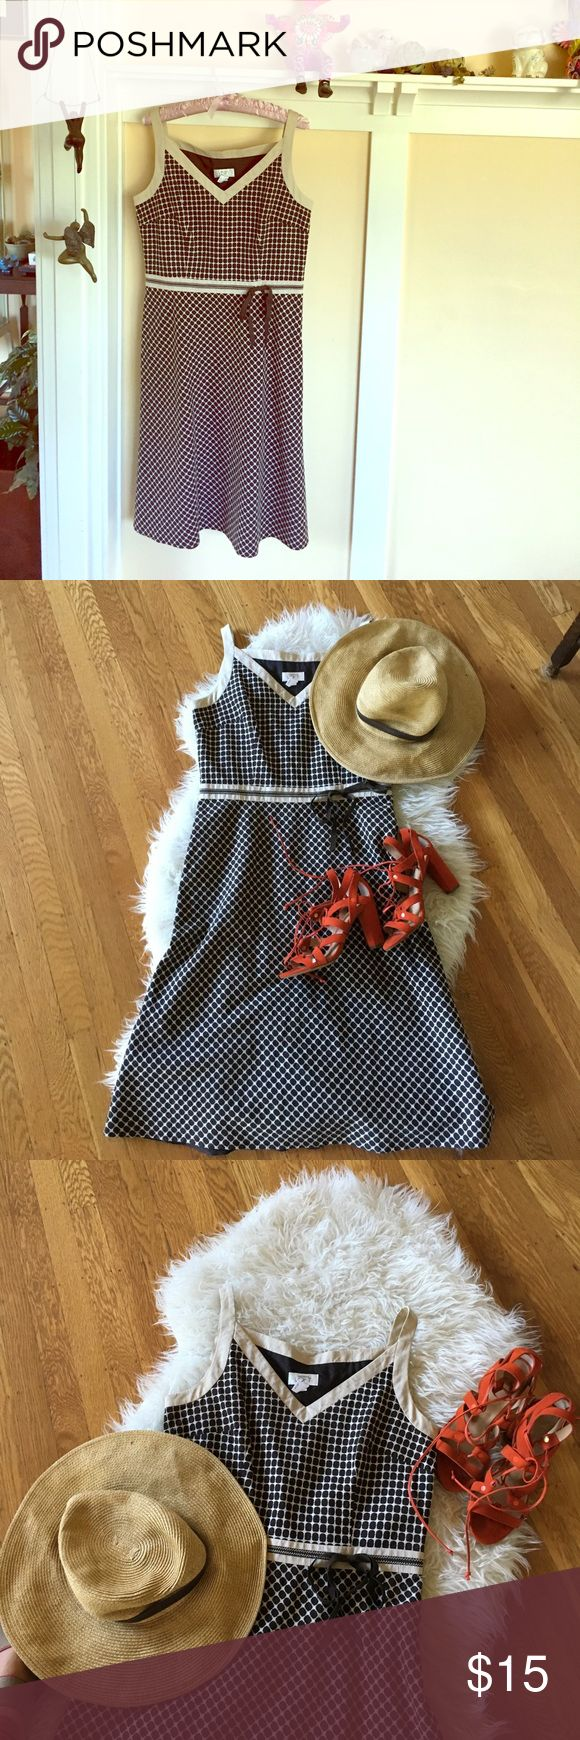 Anne Taylor Loft Sun Dress, like new!  Size 8 Anne Taylor Loft Sun Dress- like new!  Can wear with a sweater or summer Blazer for office or pair with chunky sandals for fun summer afternoon soirée.  Gorgeous little details make a special touch . anne taylor loft Dresses Midi